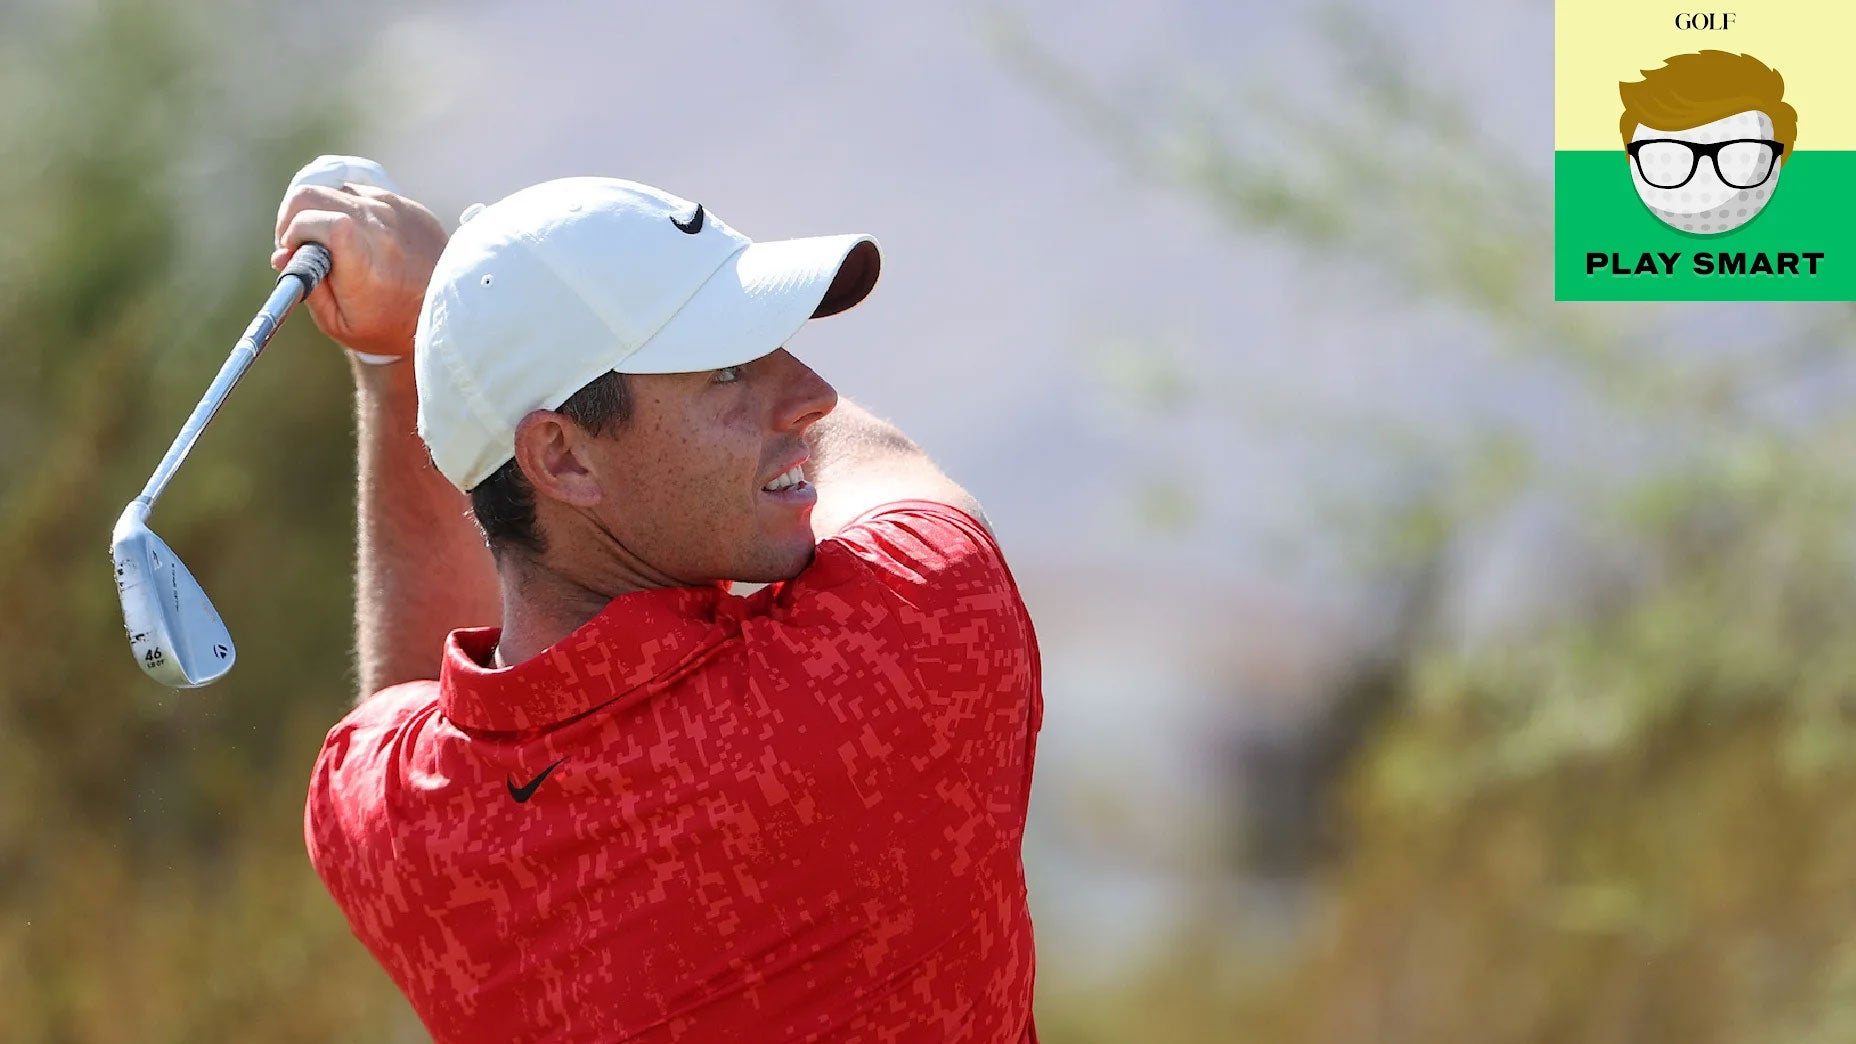 Rory McIlroy watches his ball after an iron shot during the 2021 CJ Cup